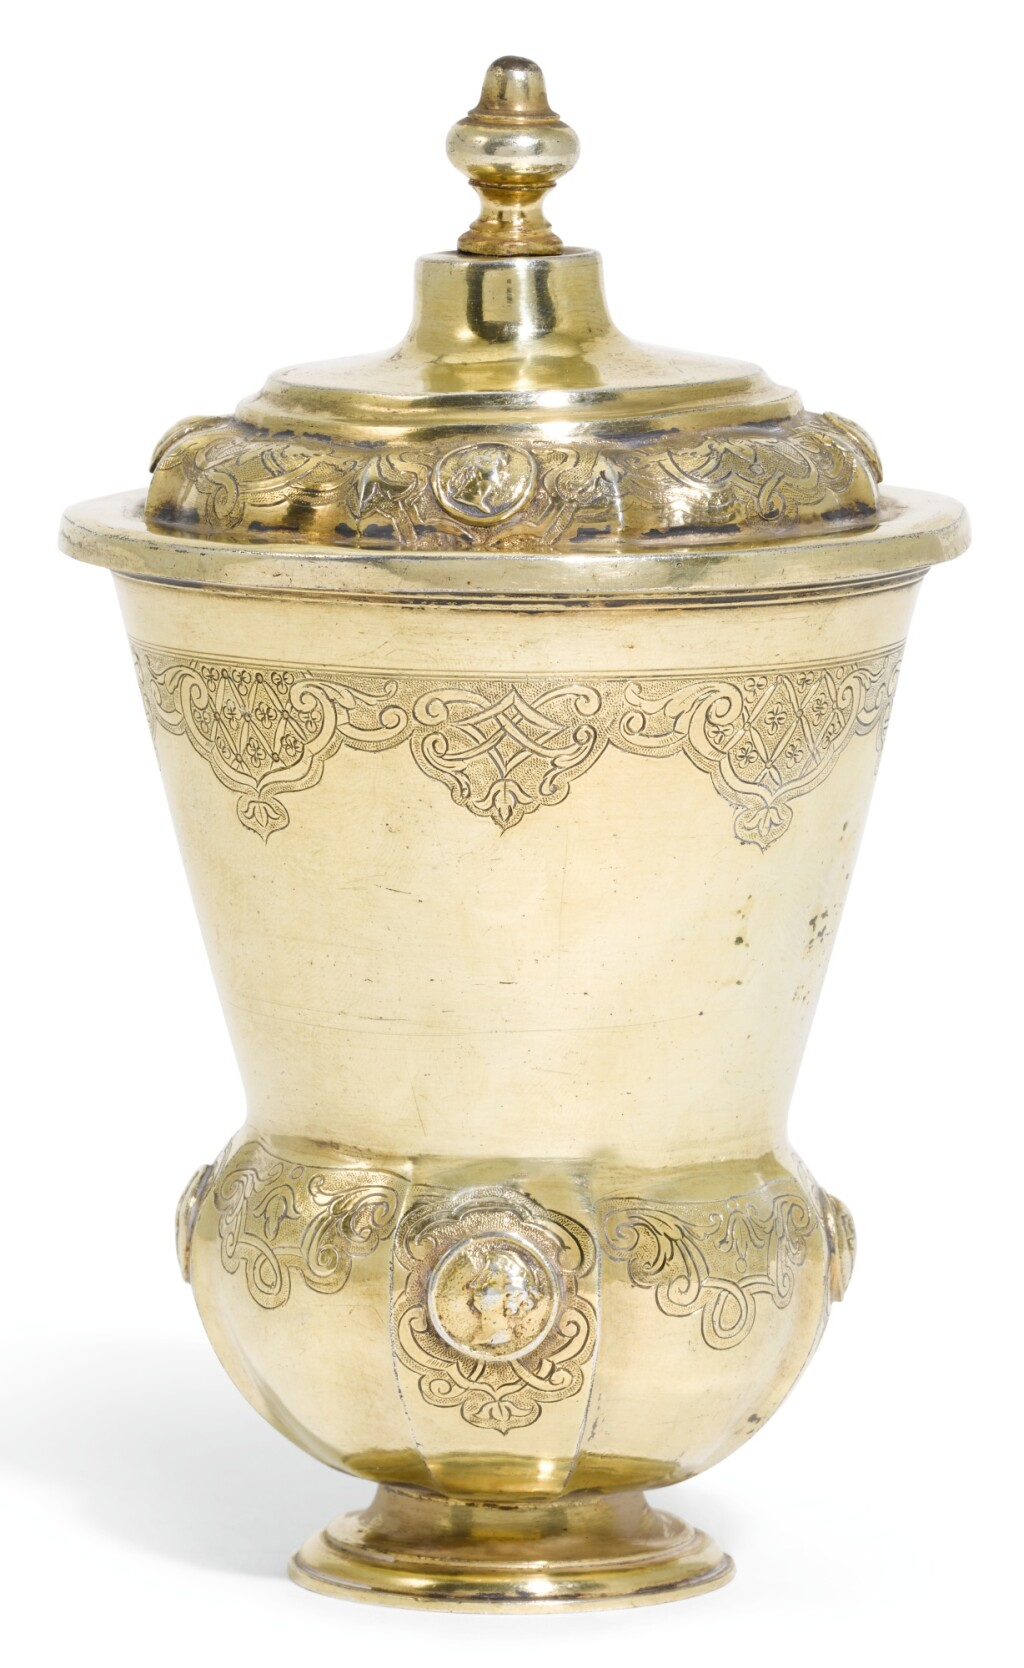 A GERMAN SILVER-GILT BEAKER AND COVER, JOHANN ERHARD HEUGLIN II, CIRCA 1721-25